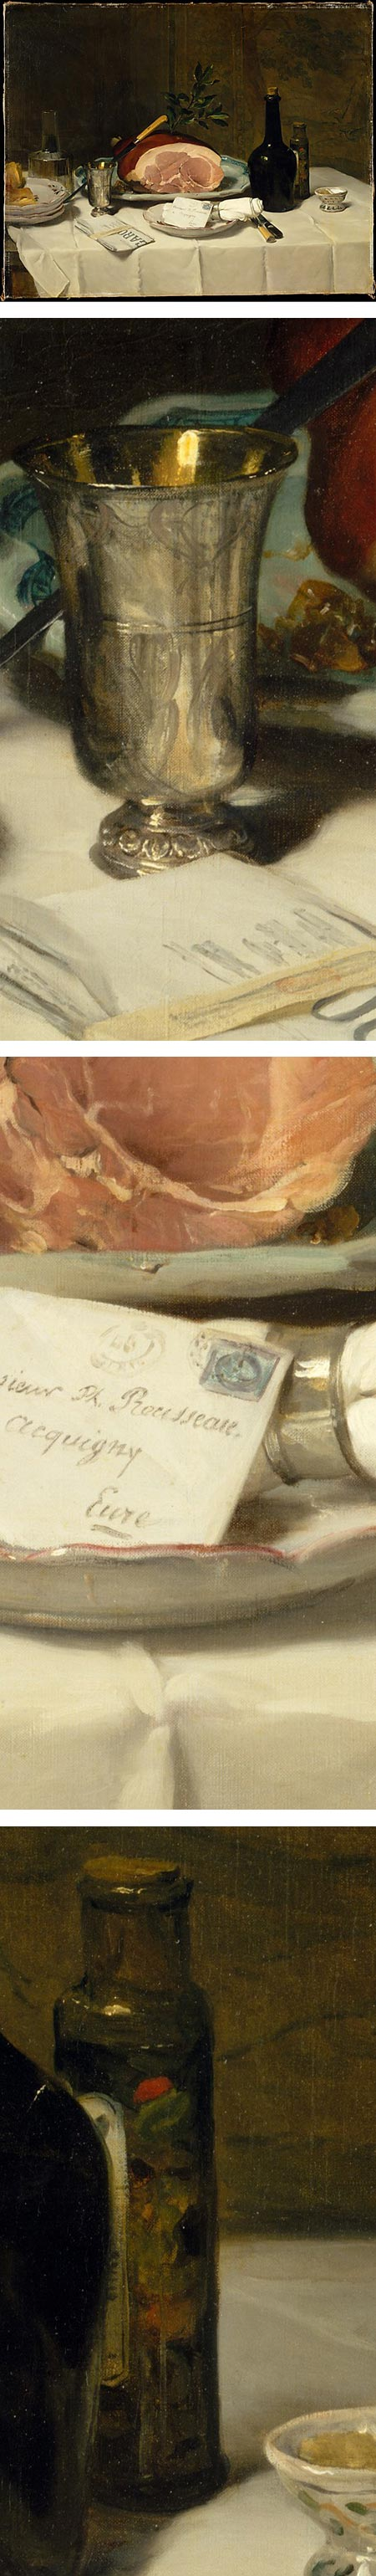 Still Life with Ham, Phillipe Rousseau